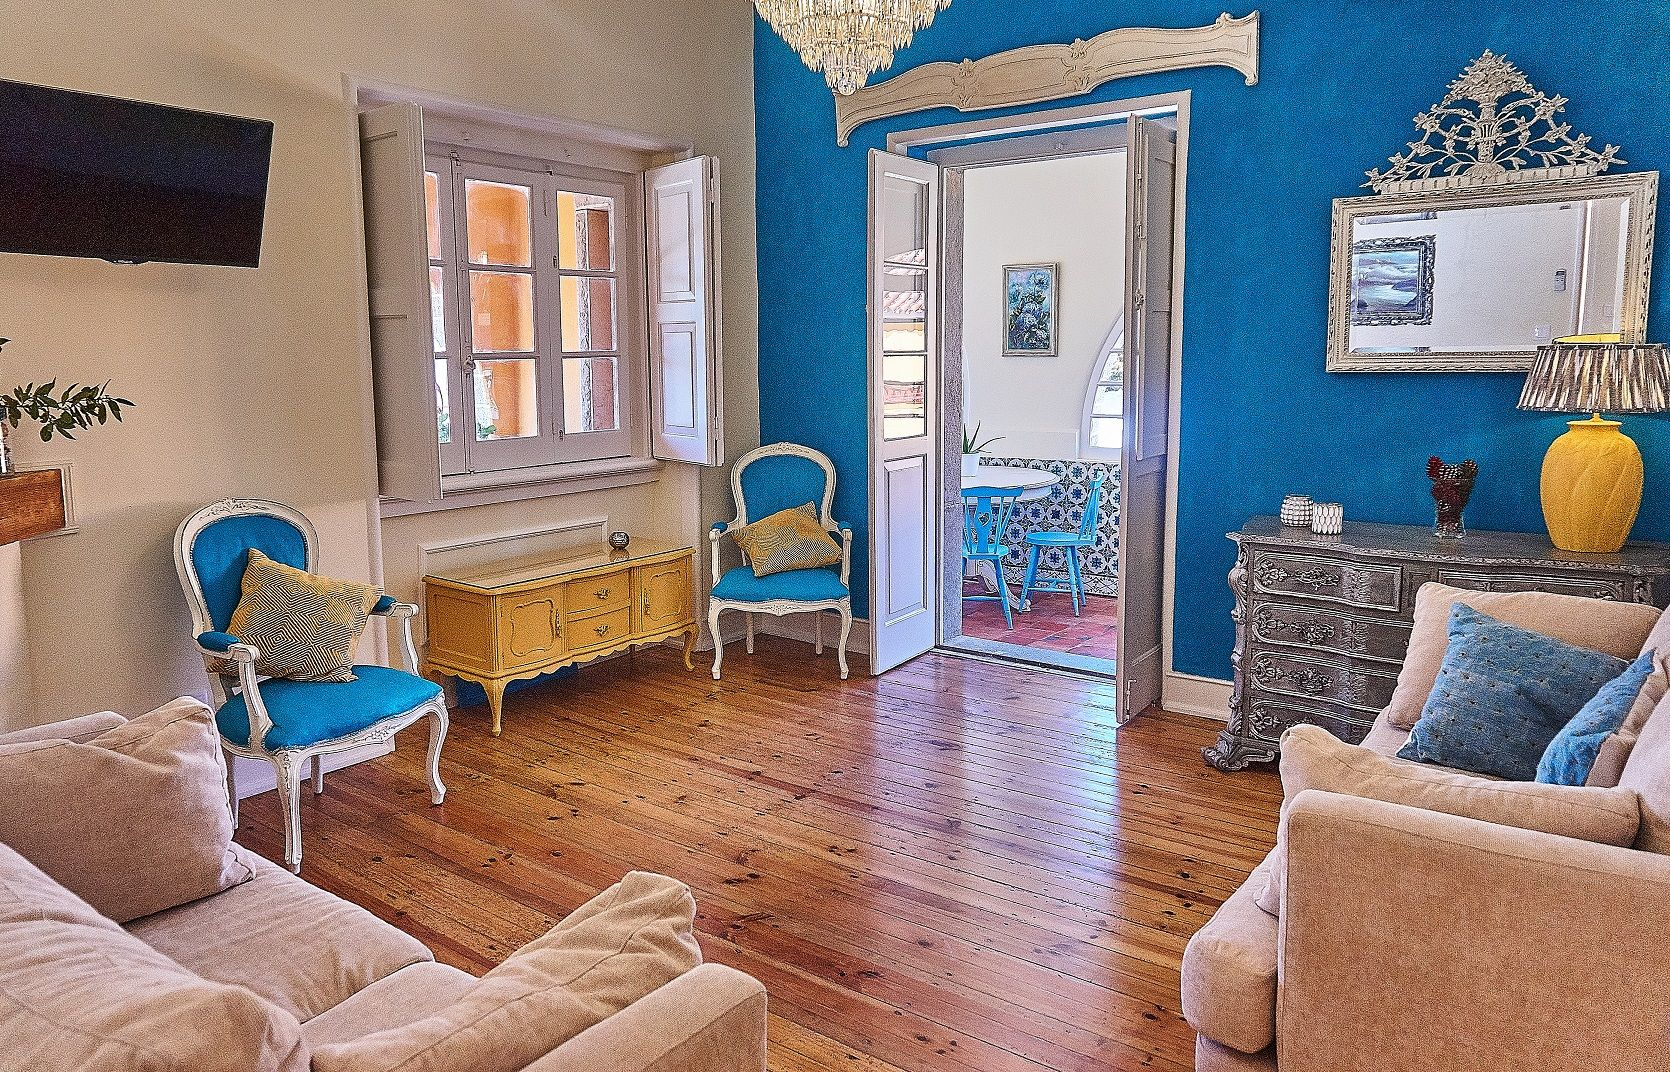 This beautiful home, built in the 1930's was completely renovated in 2016. It is a designer home with a brand new interior, but with all the charm of a traditional Portuguese Casa. It is located in the pinewood of Banzão-Colares (Sintra), in a very private and secure area, surrounded by the beauty of Sintra forest. Wonderful beaches and many historic sites are very nearby.